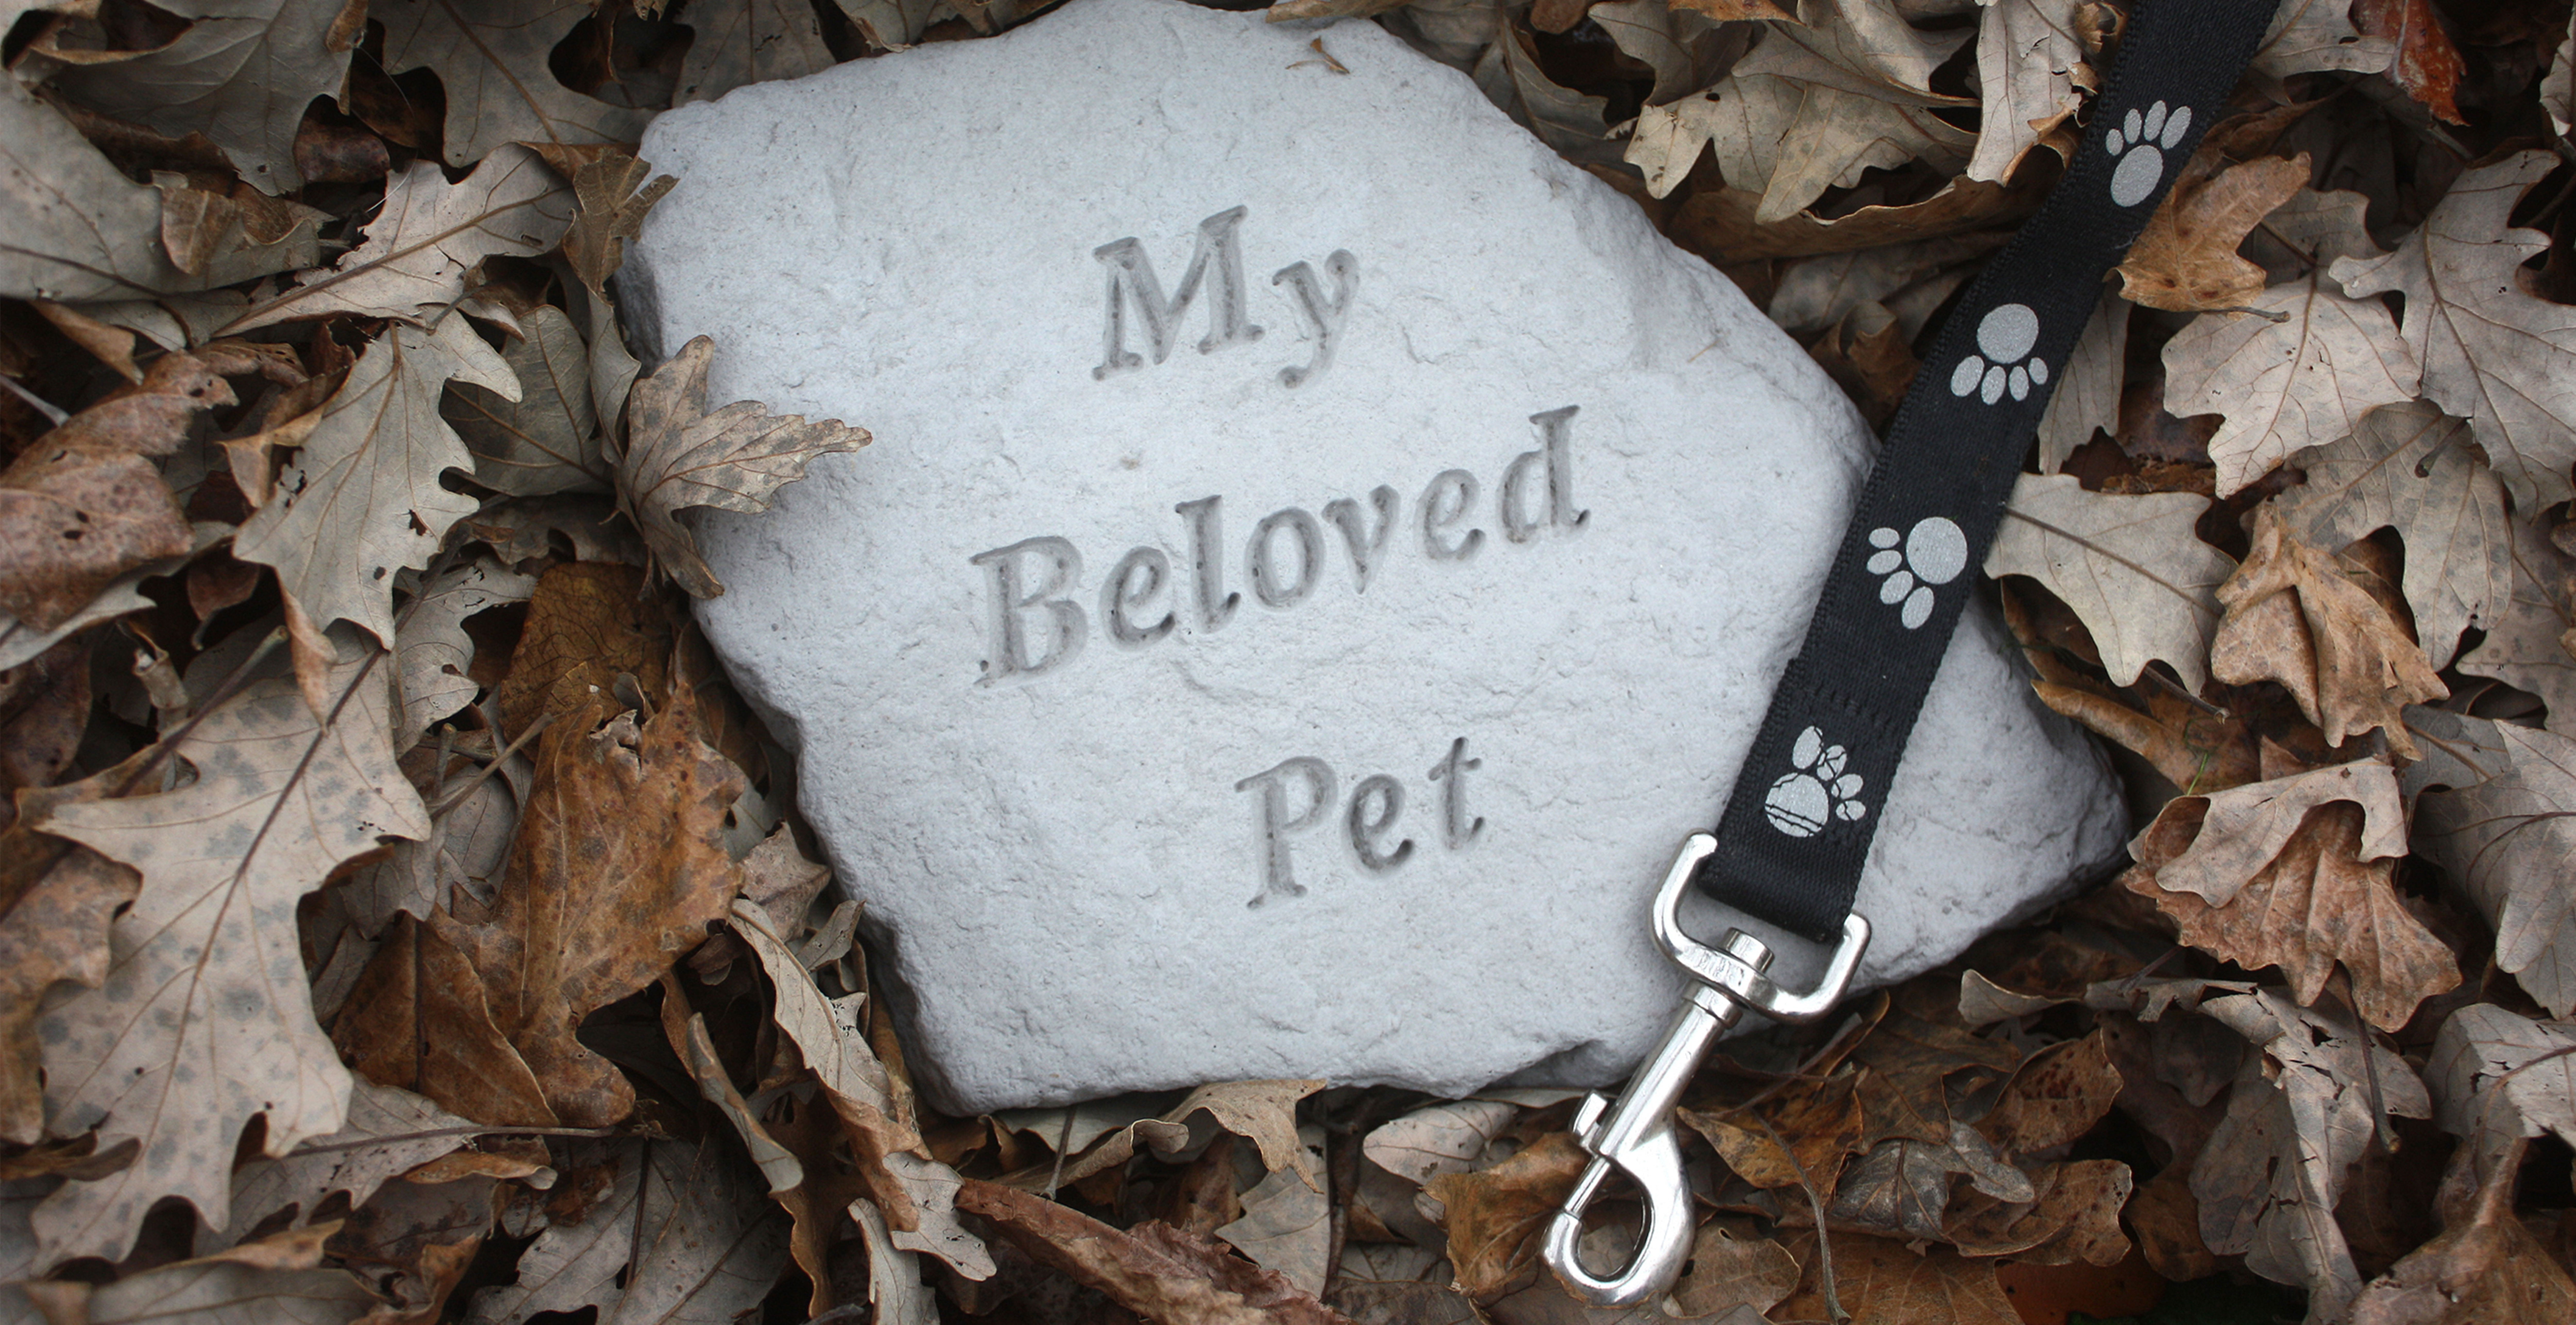 pet tomb revealed between autumn leaves